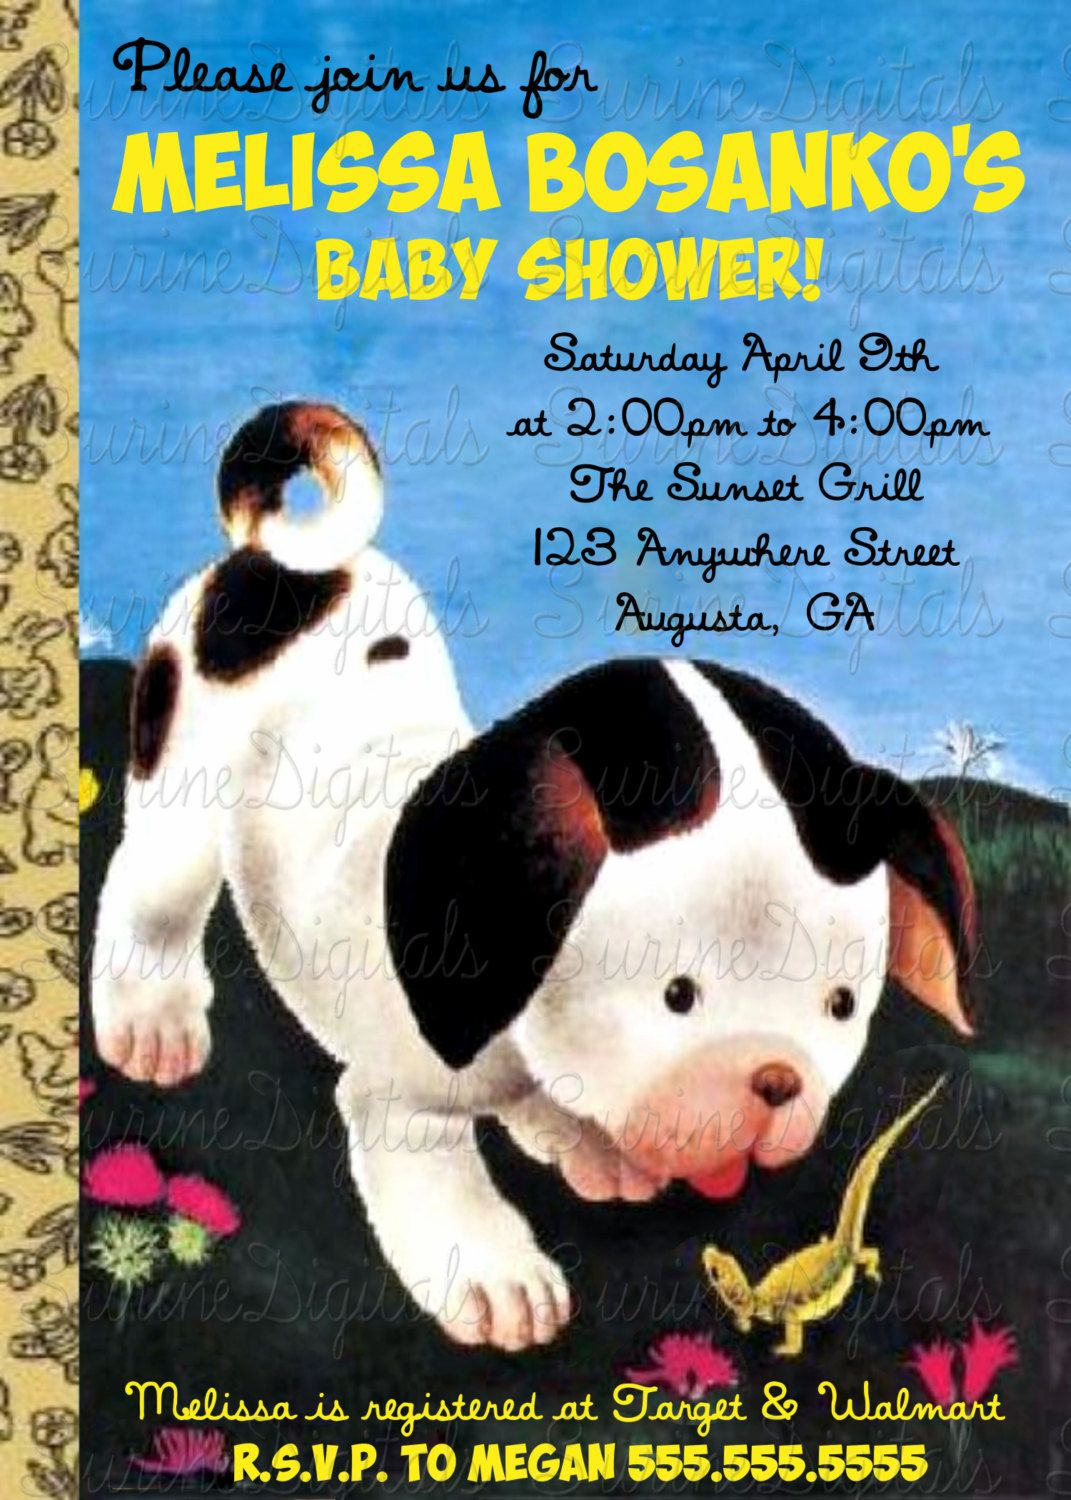 Poky puppy baby shower invitation little golden book shower invite poky puppy baby shower invitation little golden book shower invite story book baby shower filmwisefo Image collections